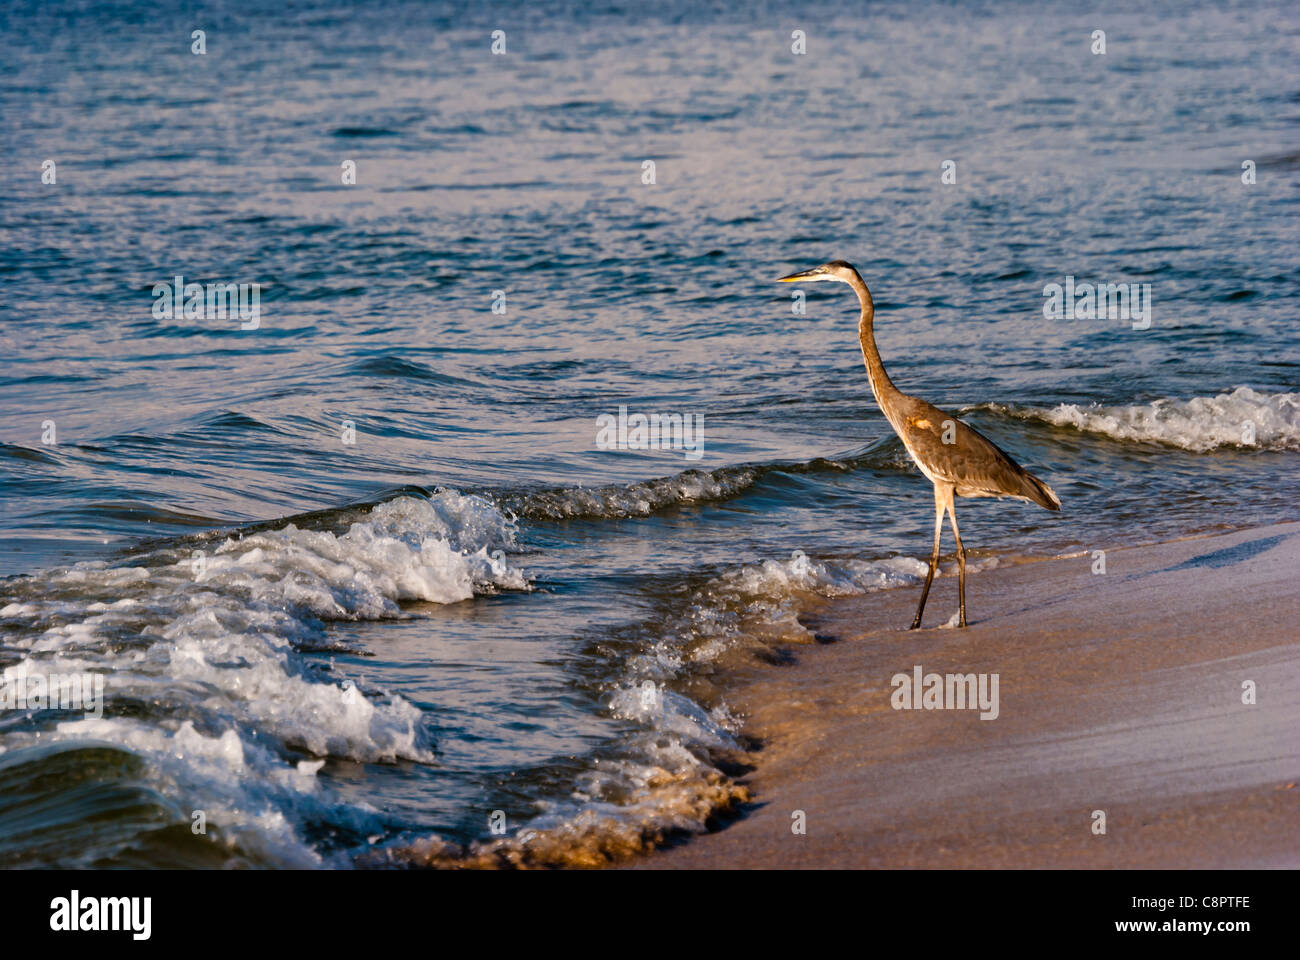 Heron hunting for a meal on the Gulf Coast shores - Stock Image